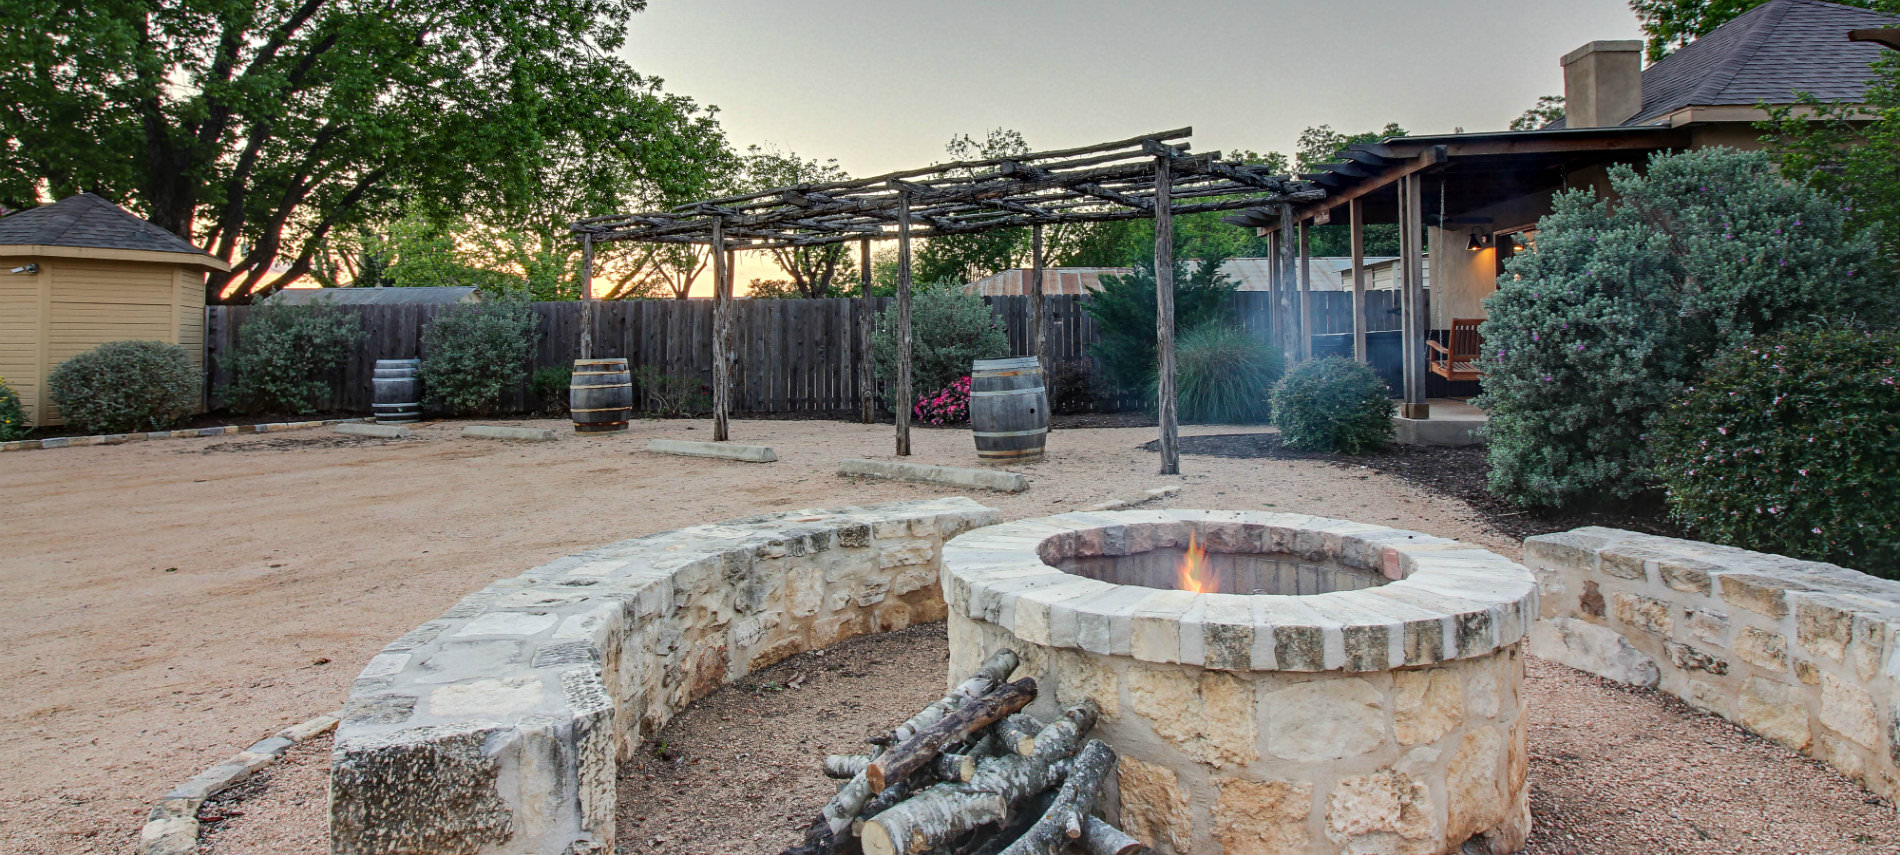 dessert looking common area with stone benches and fire pit with rustic pergola and cabing in background